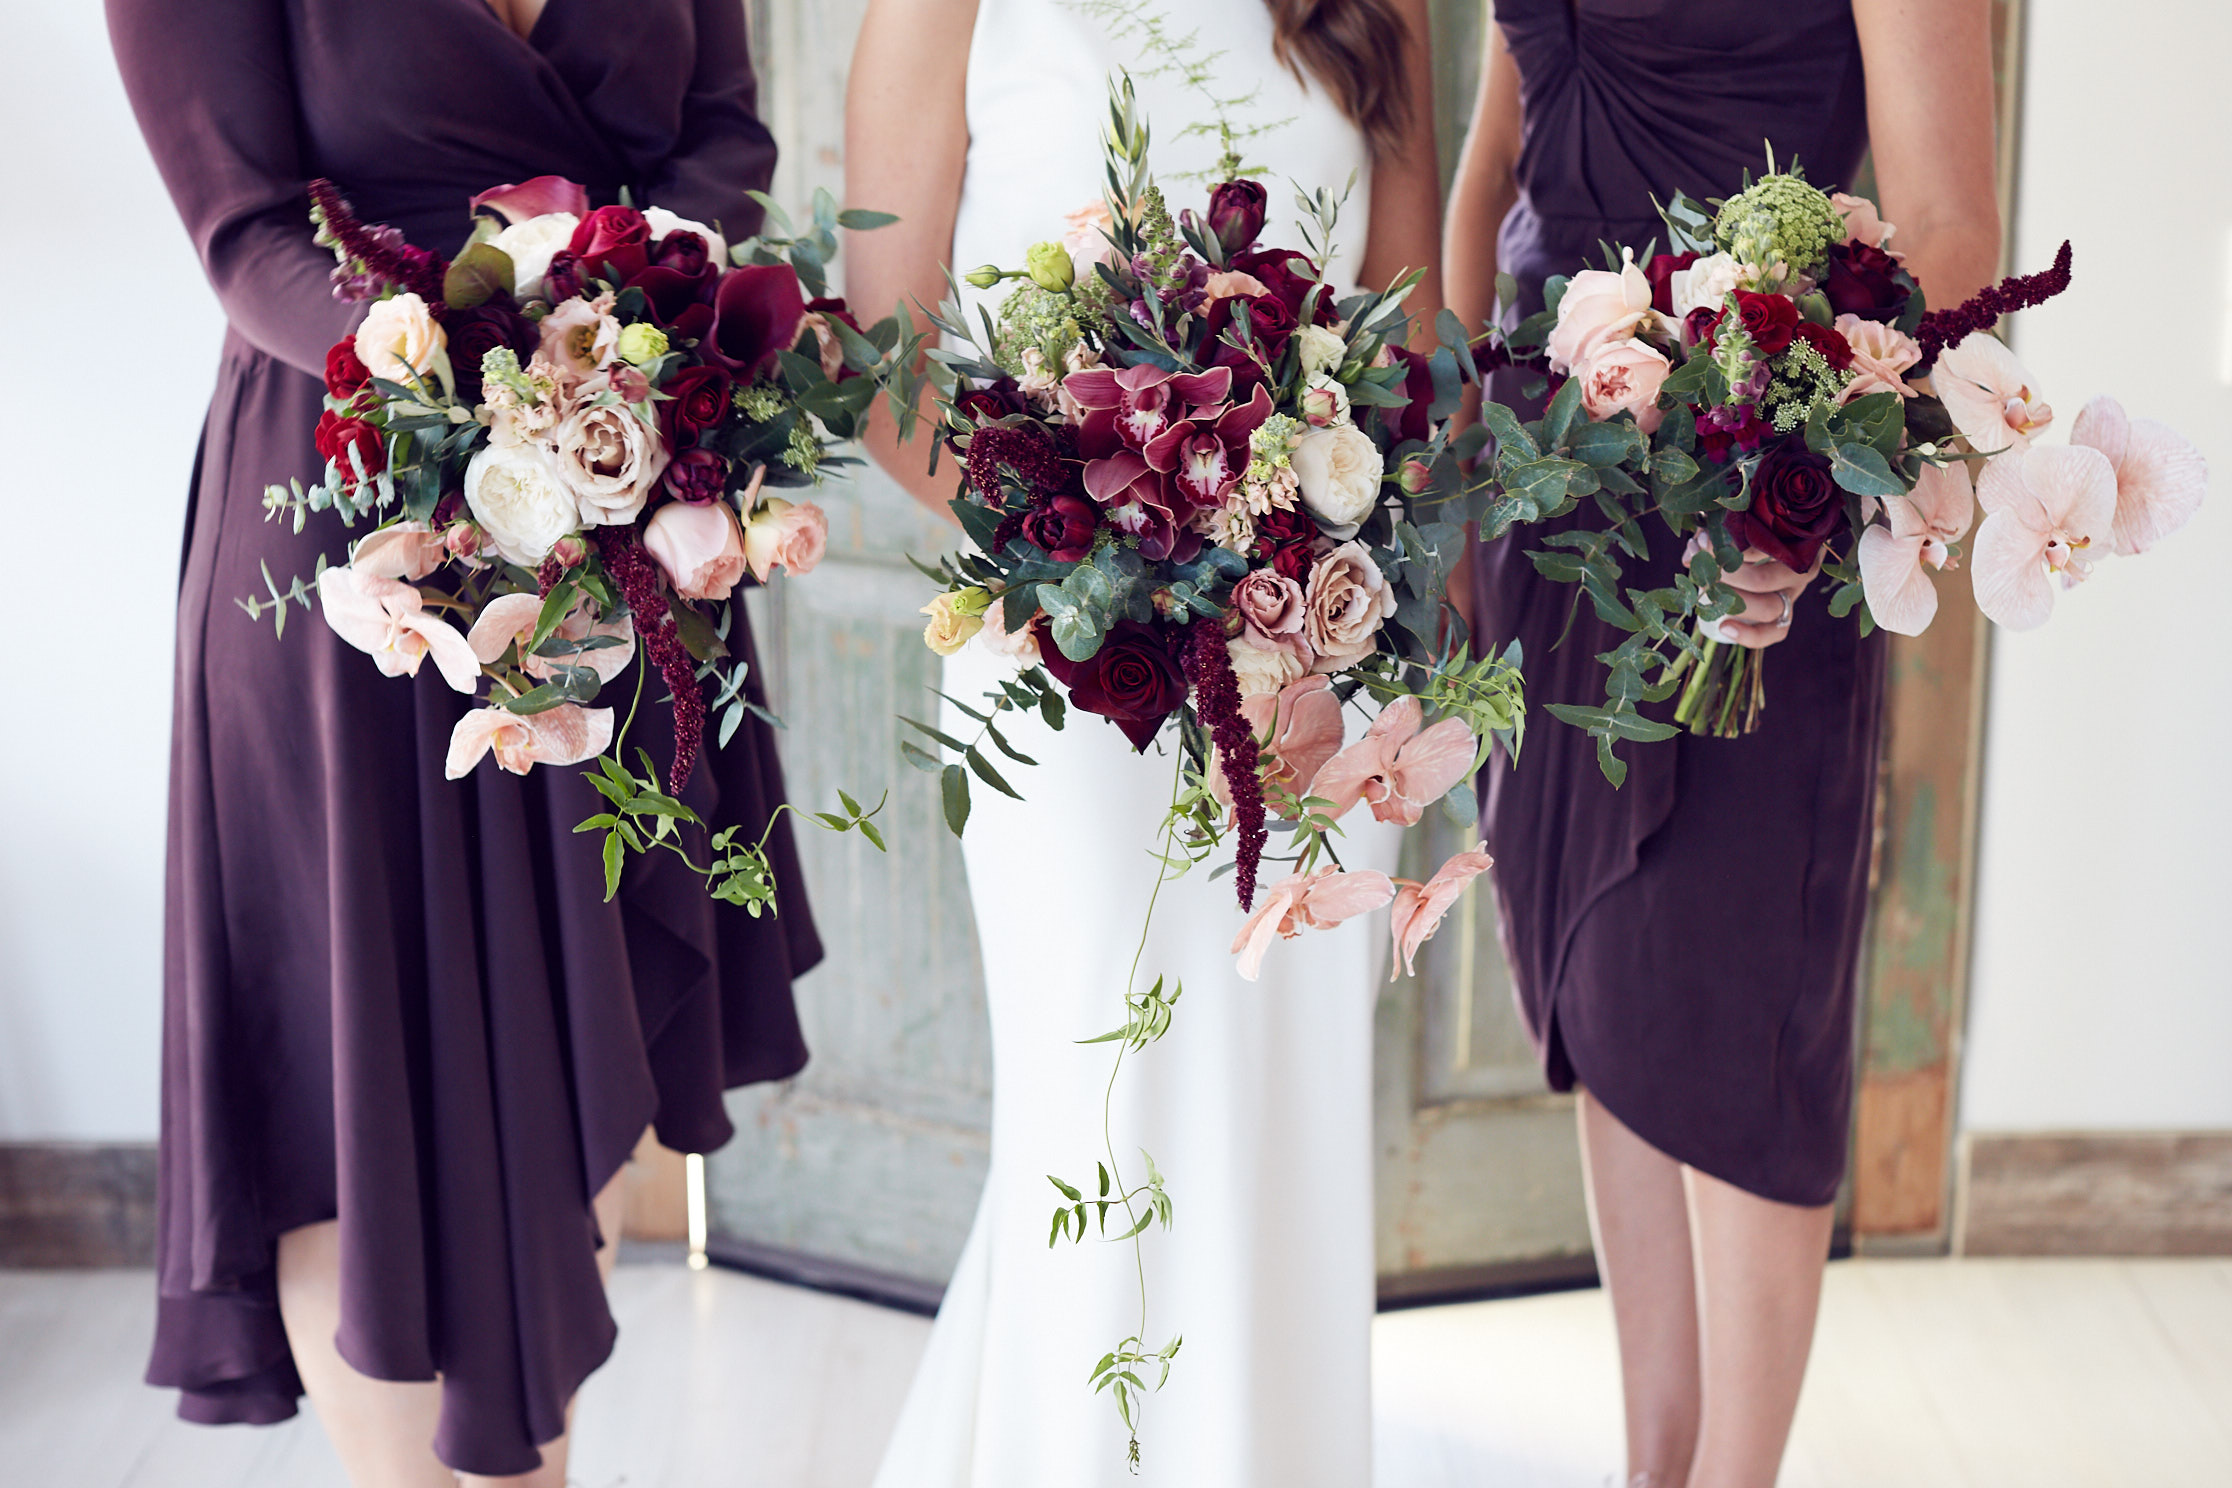 stones of the yarra valley wedding photo sugarbee flowers by lost in love